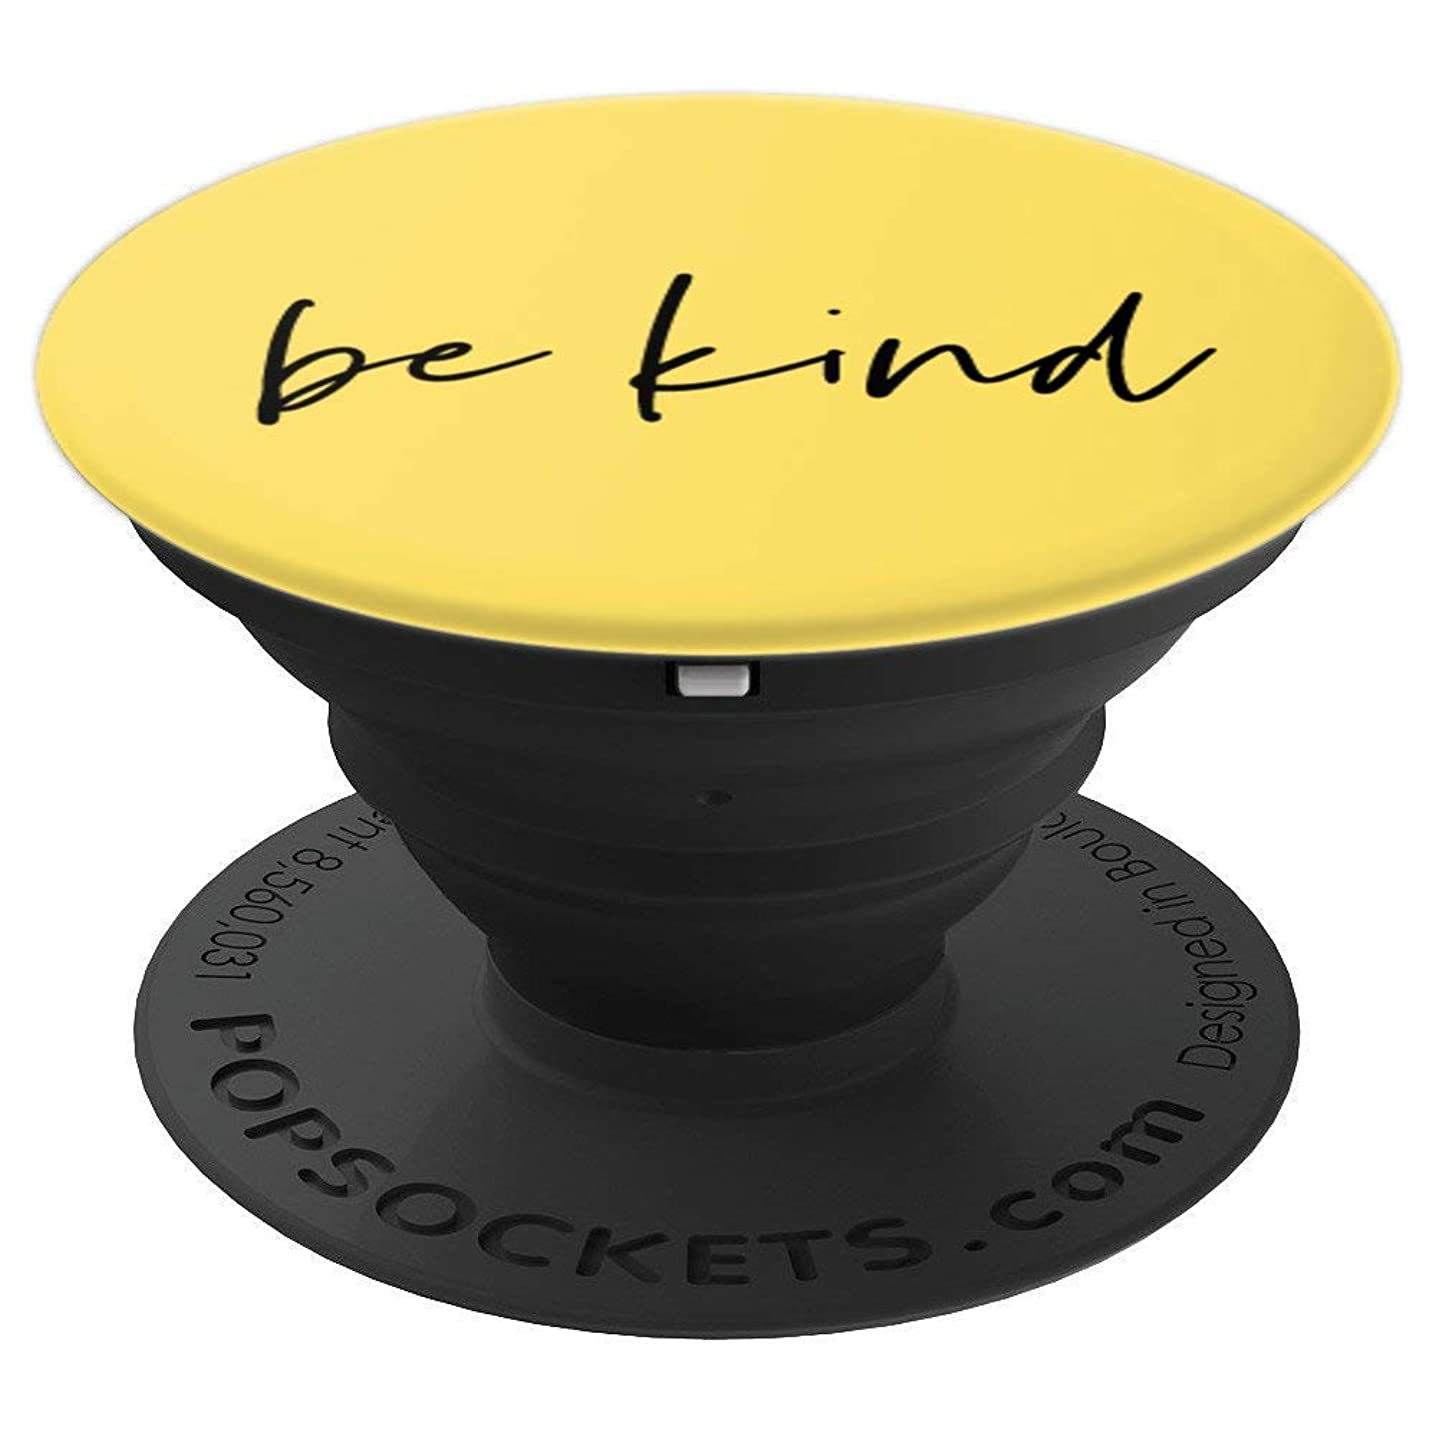 Be Kind - Inspirational and Motivational Quote in Yellow - PopSockets Grip and Stand for Phones and Tablets